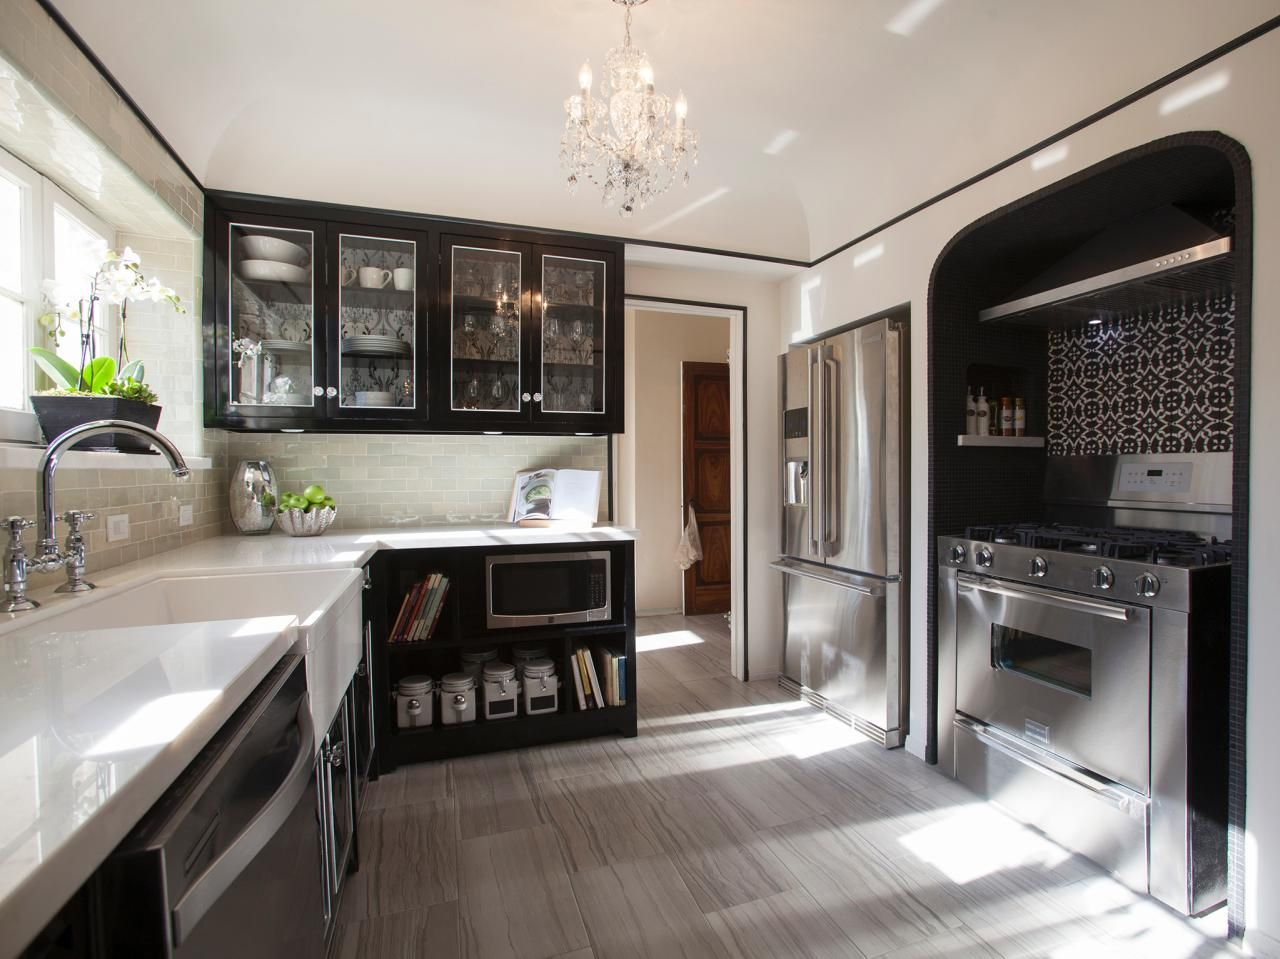 25 amazing room makeovers from hgtv 39 s house hunters renovation black cabinet - Amazing beautiful kitchen rooms ...